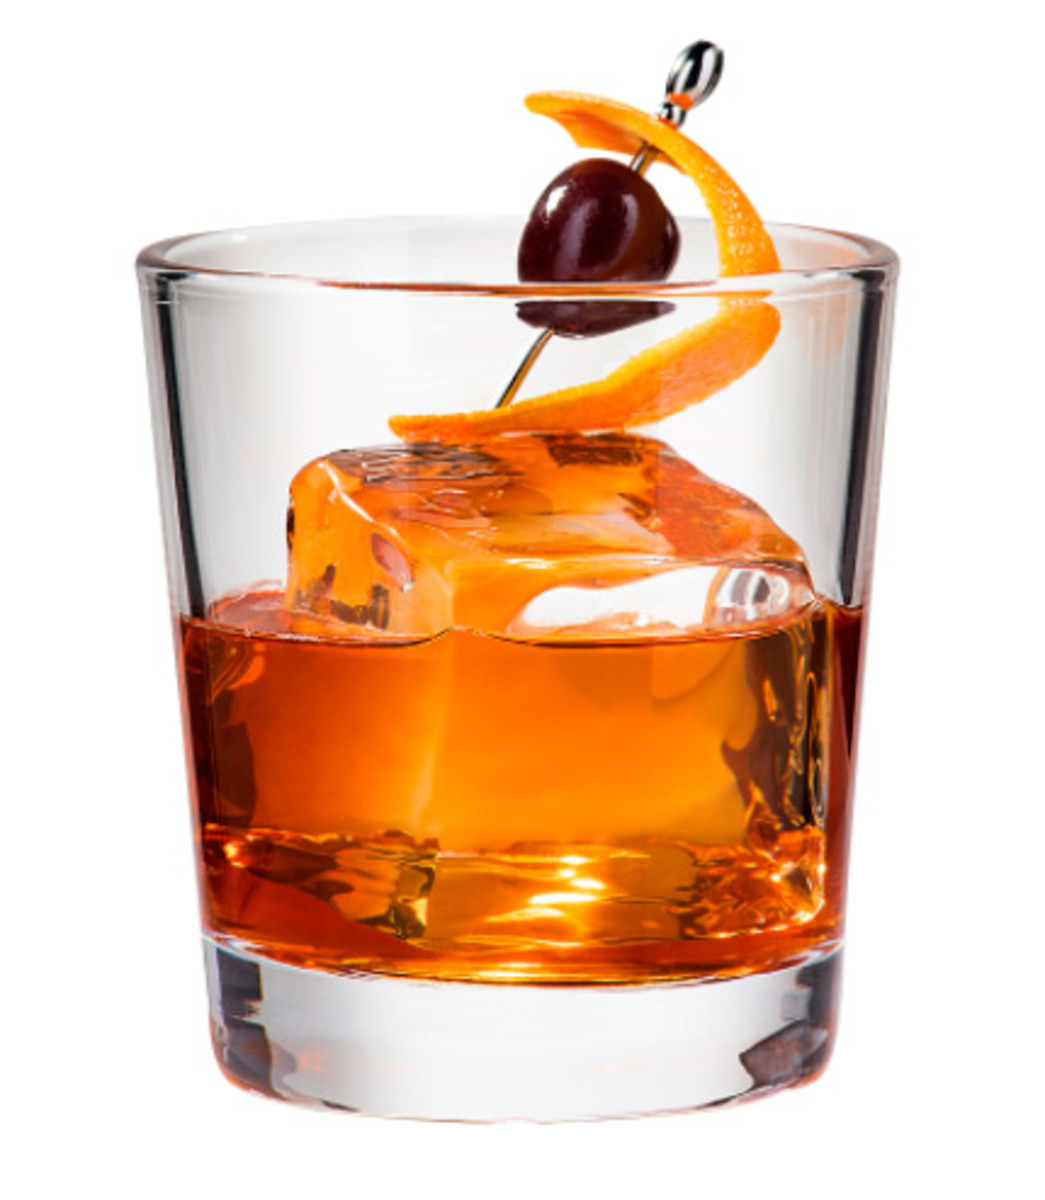 D'USSÉ The New Fashioned